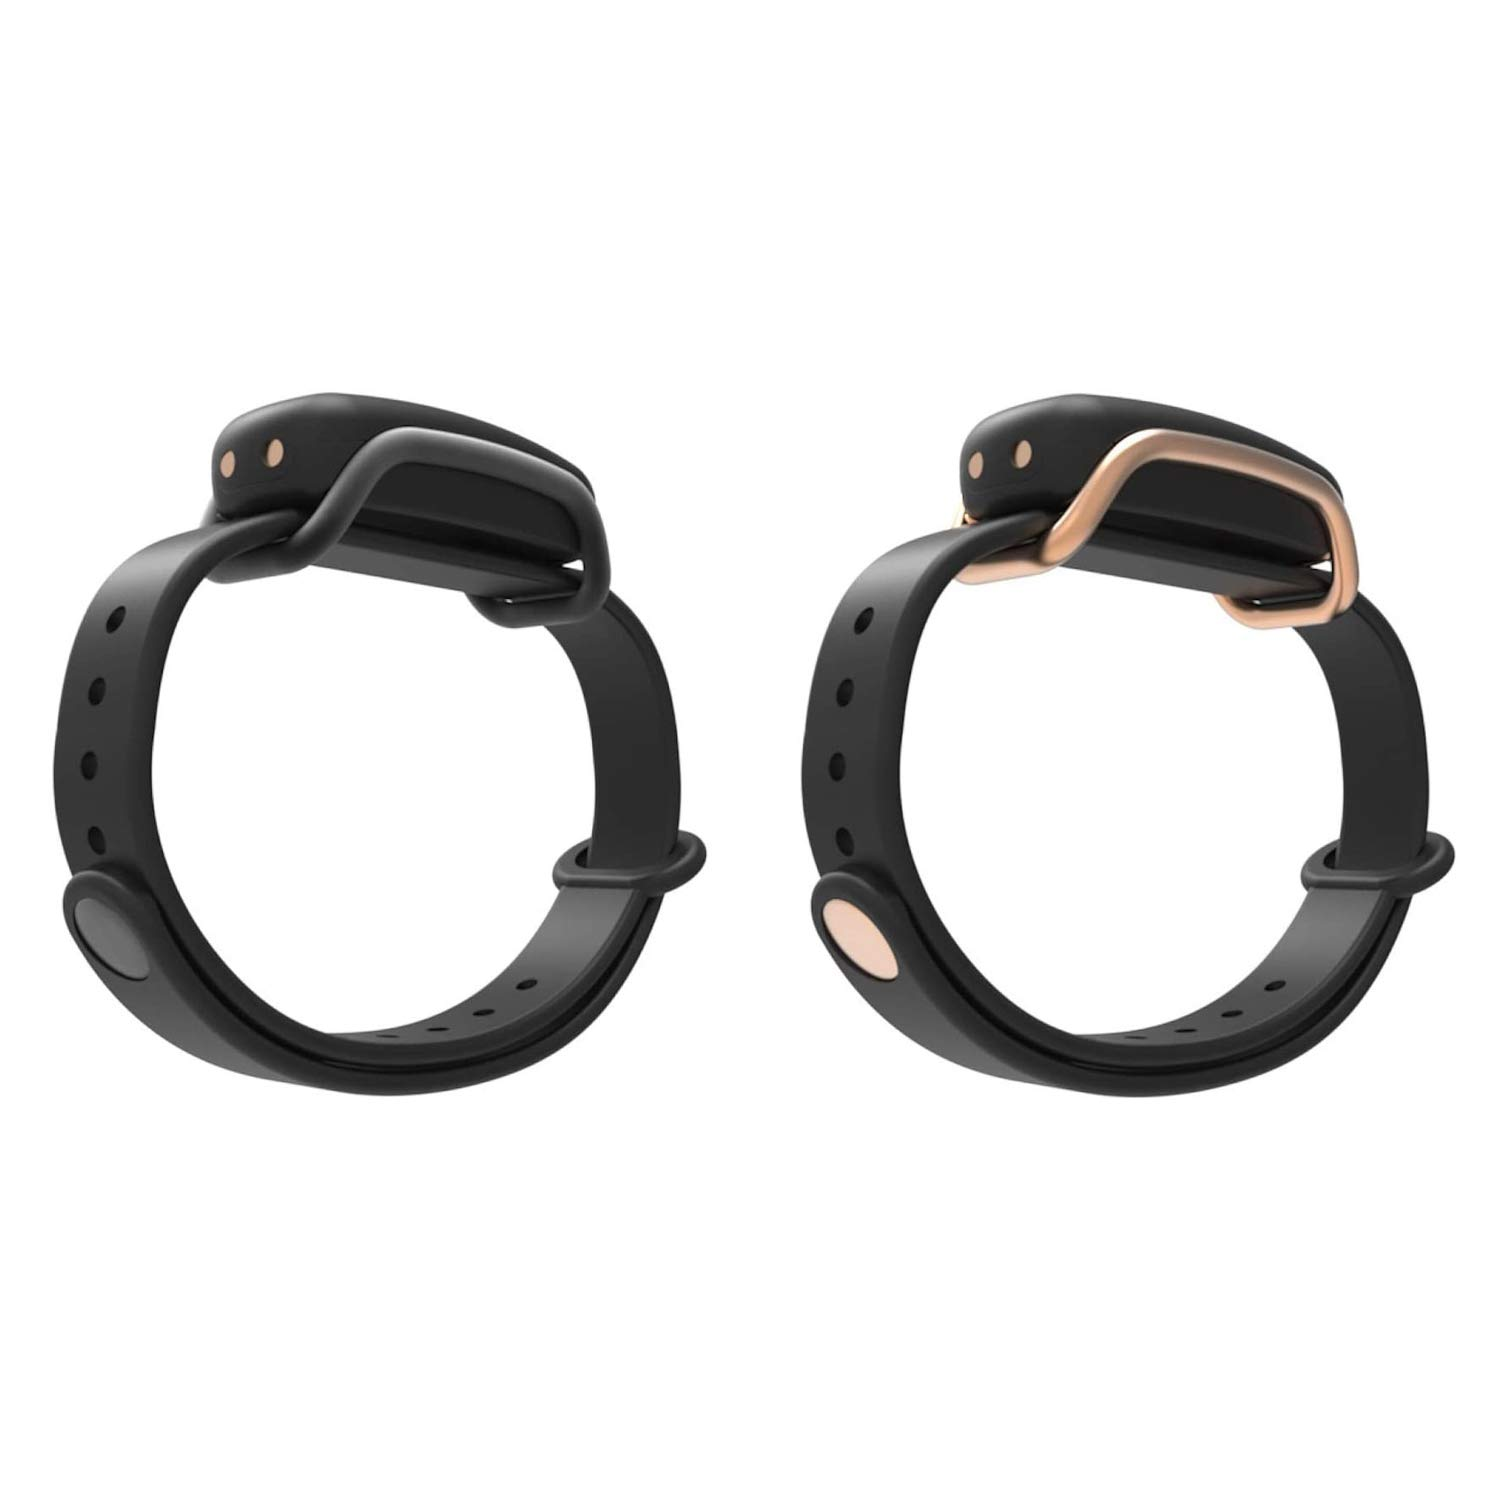 BOND TOUCH Vibrating Waterproof Bluetooth Long Distance Connection Bracelet with 4 Day Battery Life for iOS and Android Devices, Black and Gold (2 Pack)